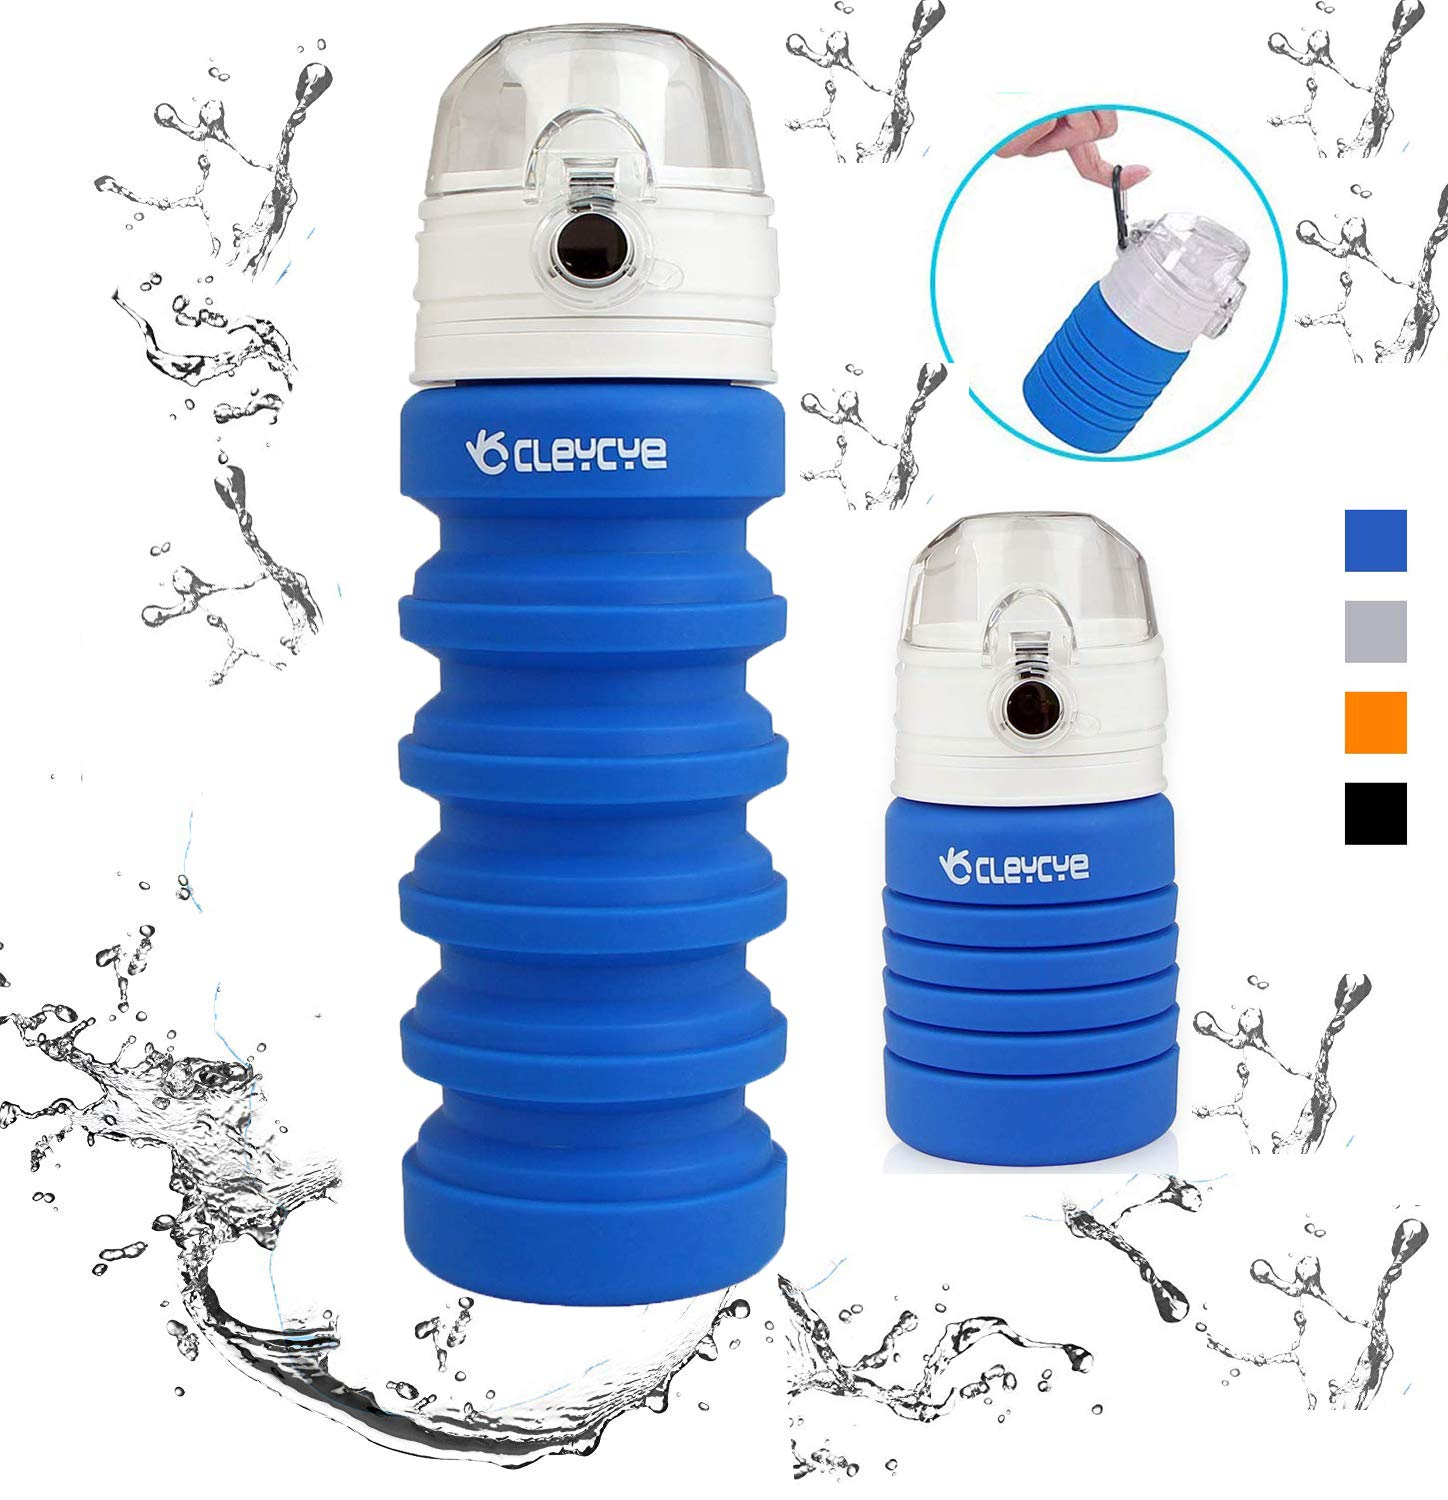 CLEYCYE Collapsible Water Bottle BPA Free, FDA Approved Silicone Food-Grade Portable Foldable Leak Proof Lightweight Travel Sports Water Bottle 18oz,Blue